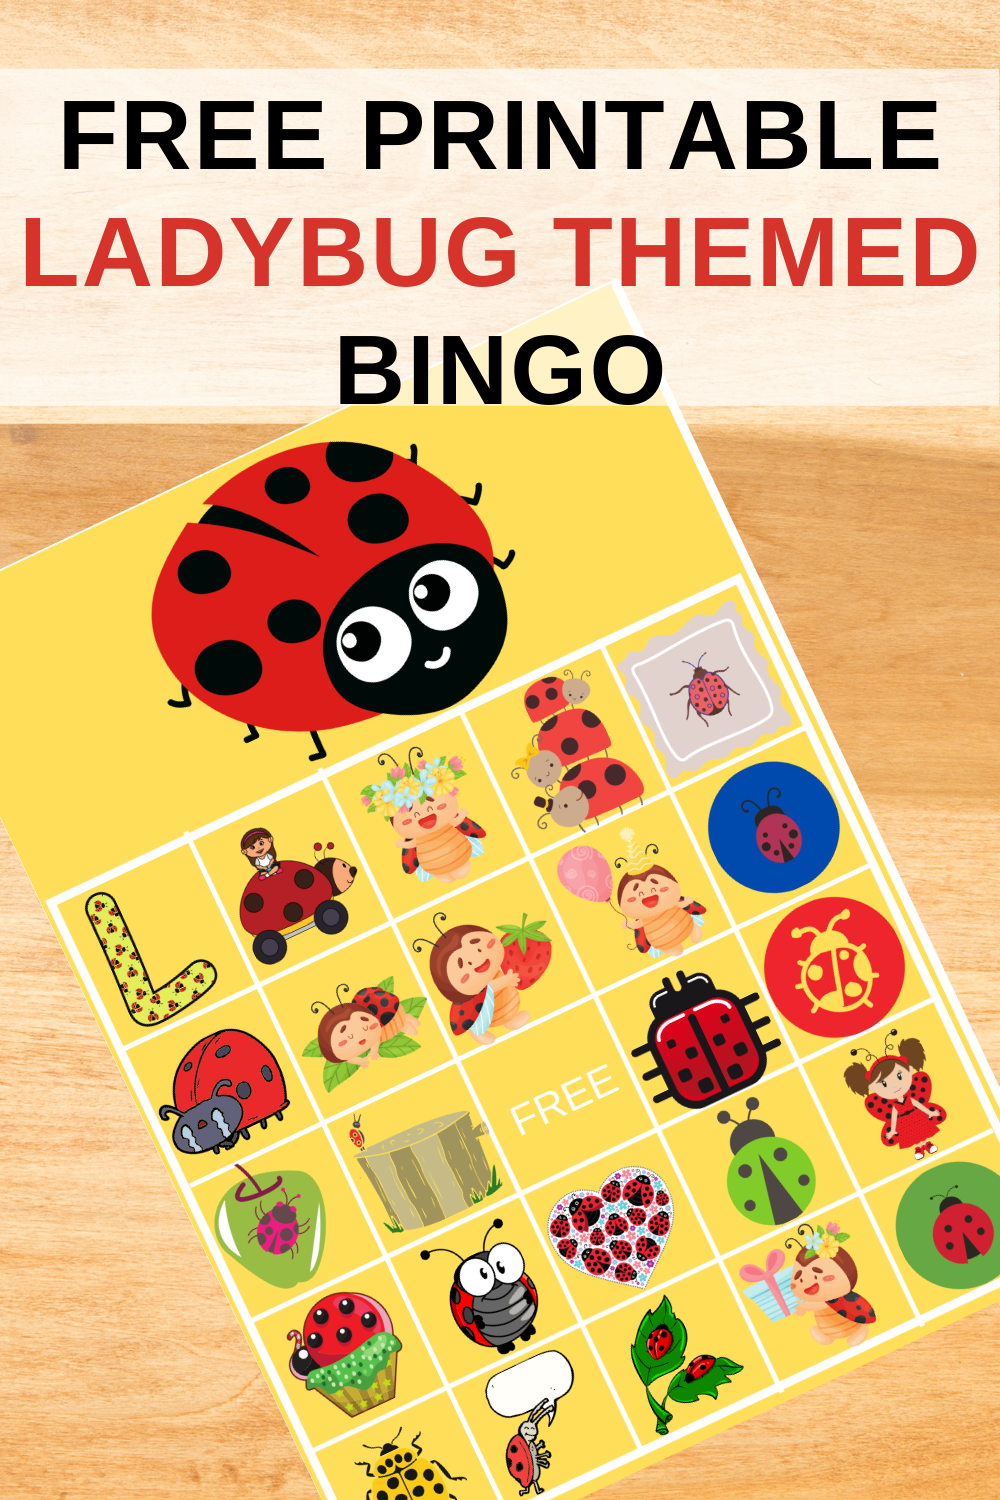 Lady bug birthday party game ideas for toddlers